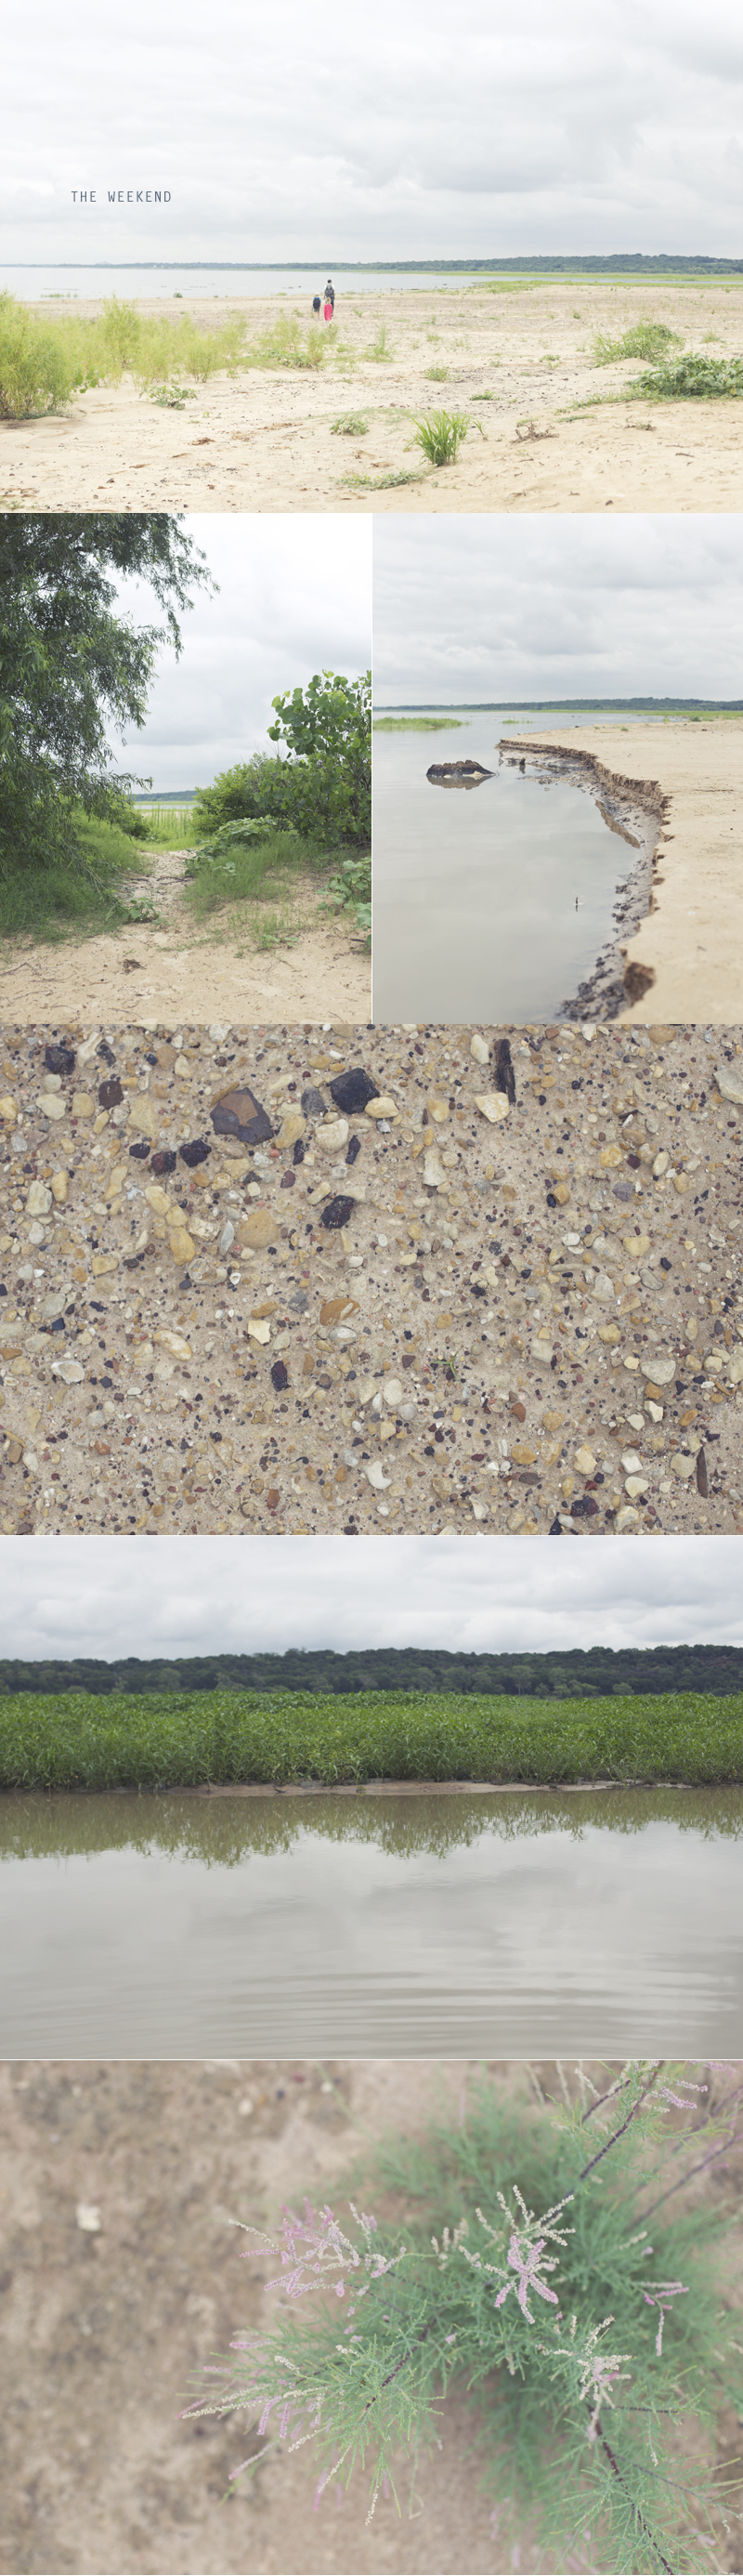 Weekend Snapshot: The Beach Trail to Grapevine Lake